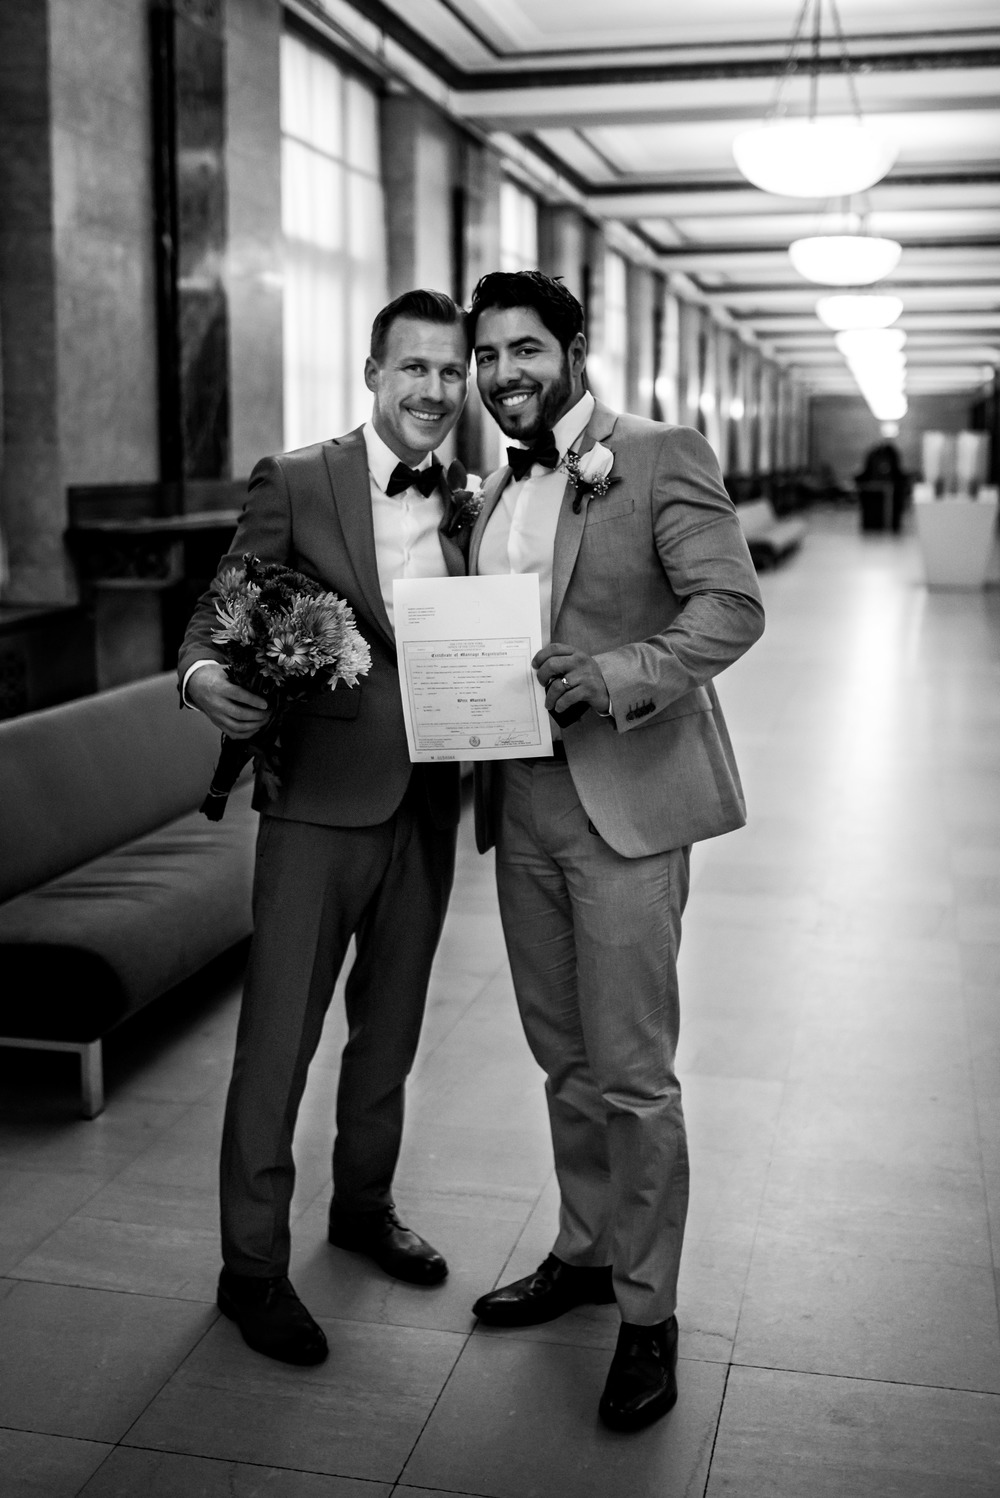 Rob-Marcelo-Gompers-Wedding-Photo-by- Tricia-S.-Ramsay-37.jpg